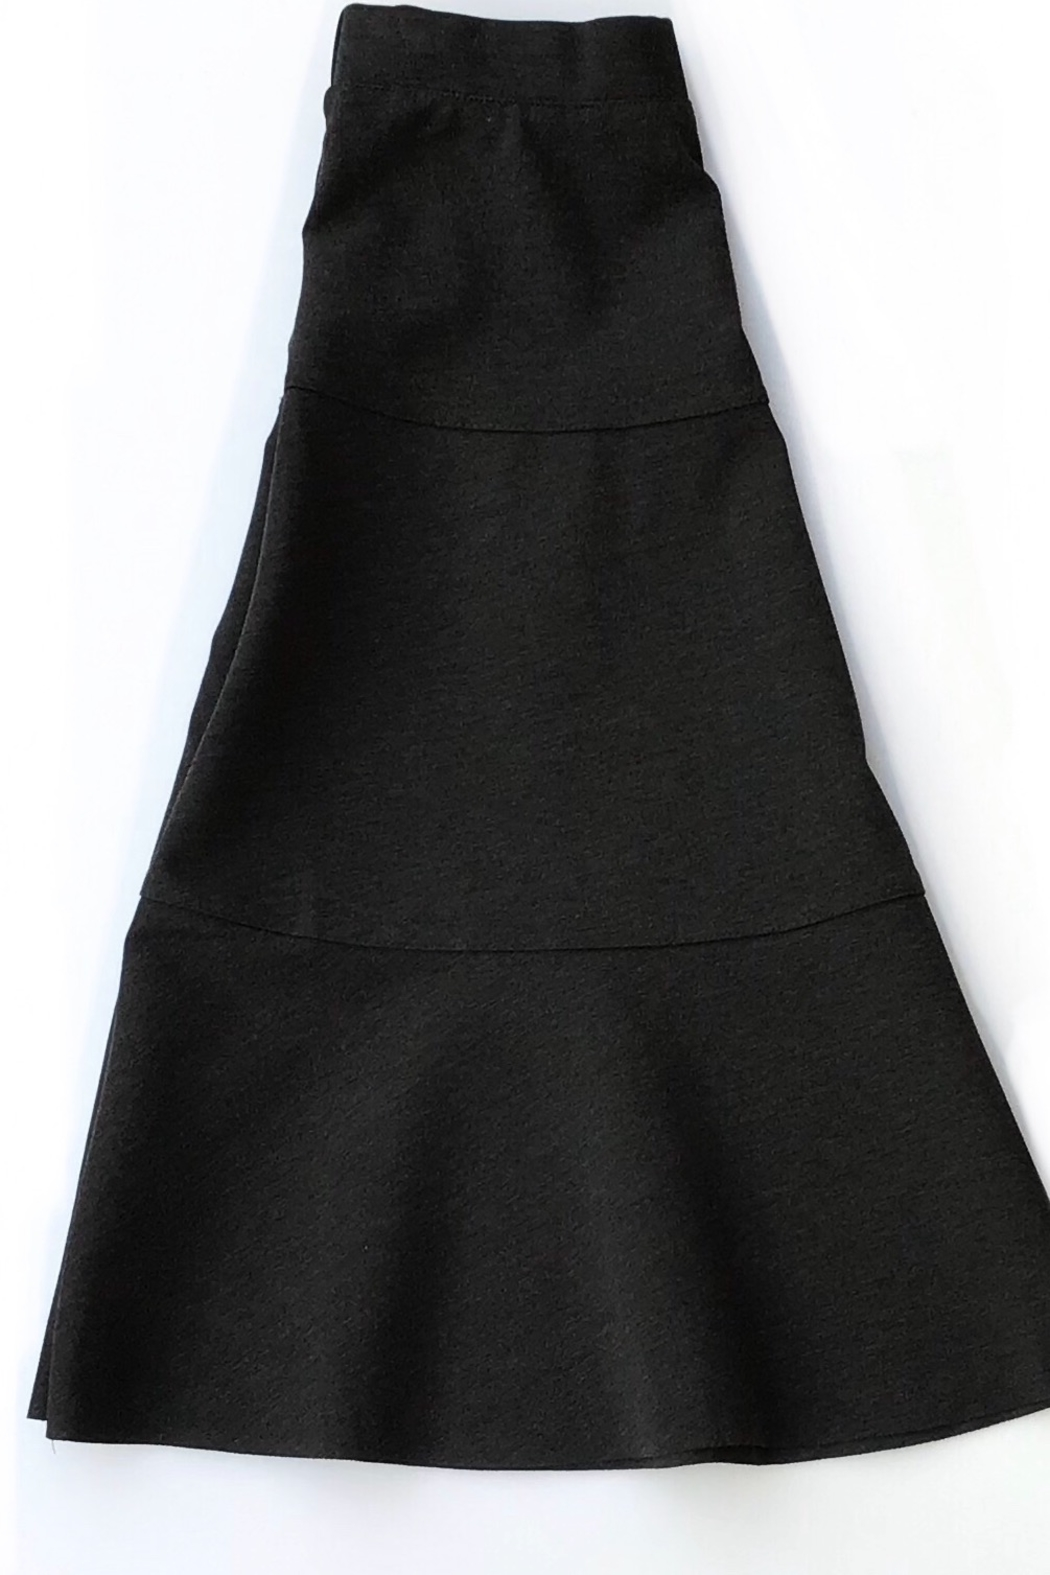 Meli by FAME TIER PONTE SKIRT 25 INCH - Front Cropped Image